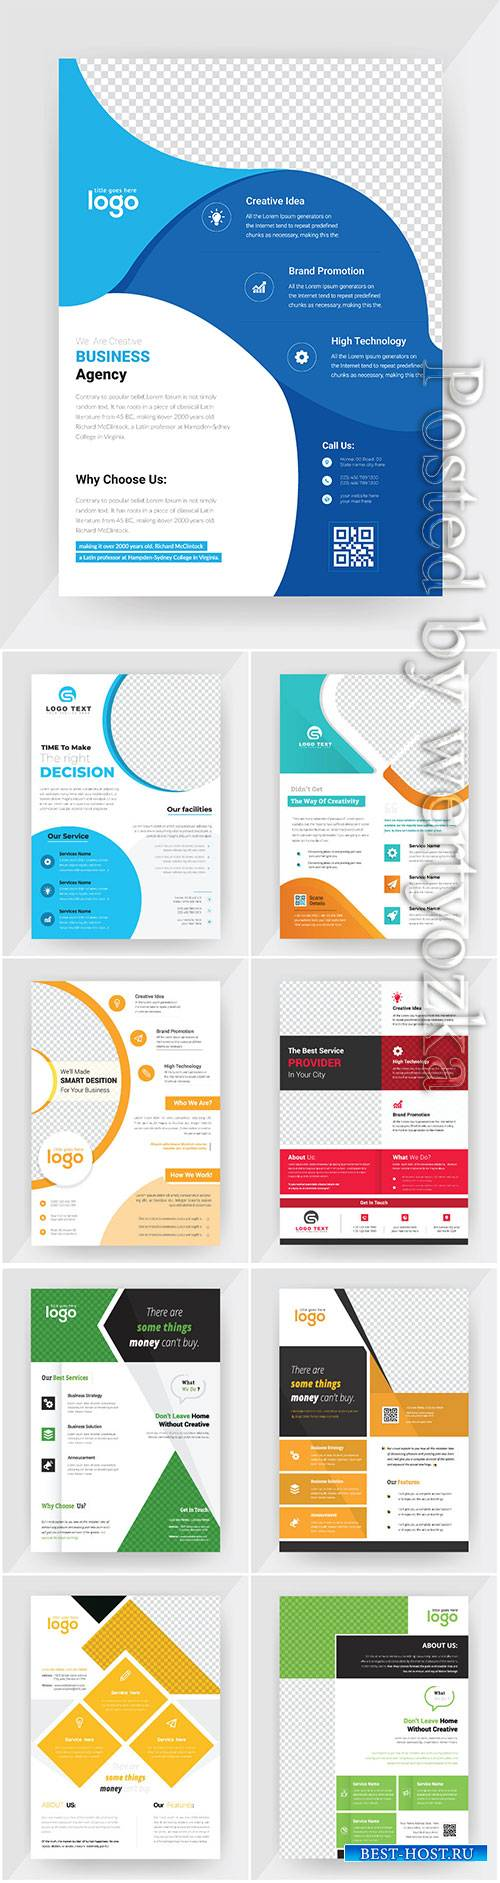 Annual report concept flyer vector template, brochure flat design